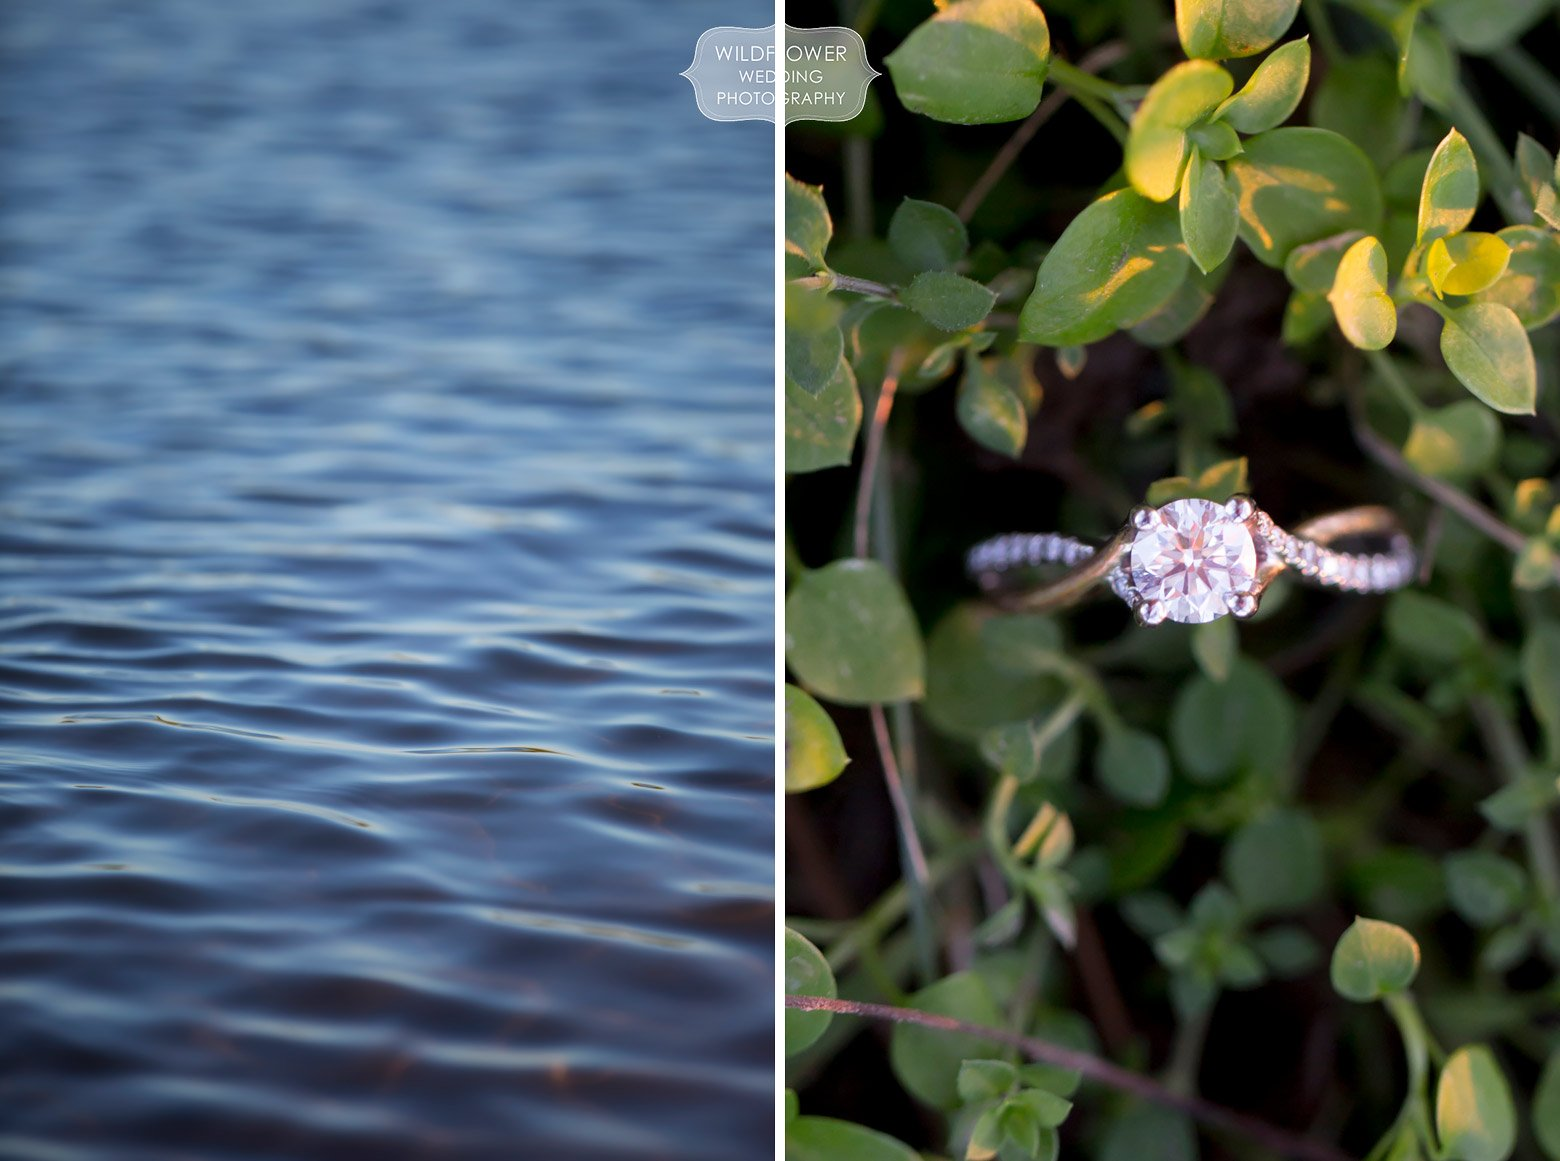 An engagement ring in green clover in mid-MO.